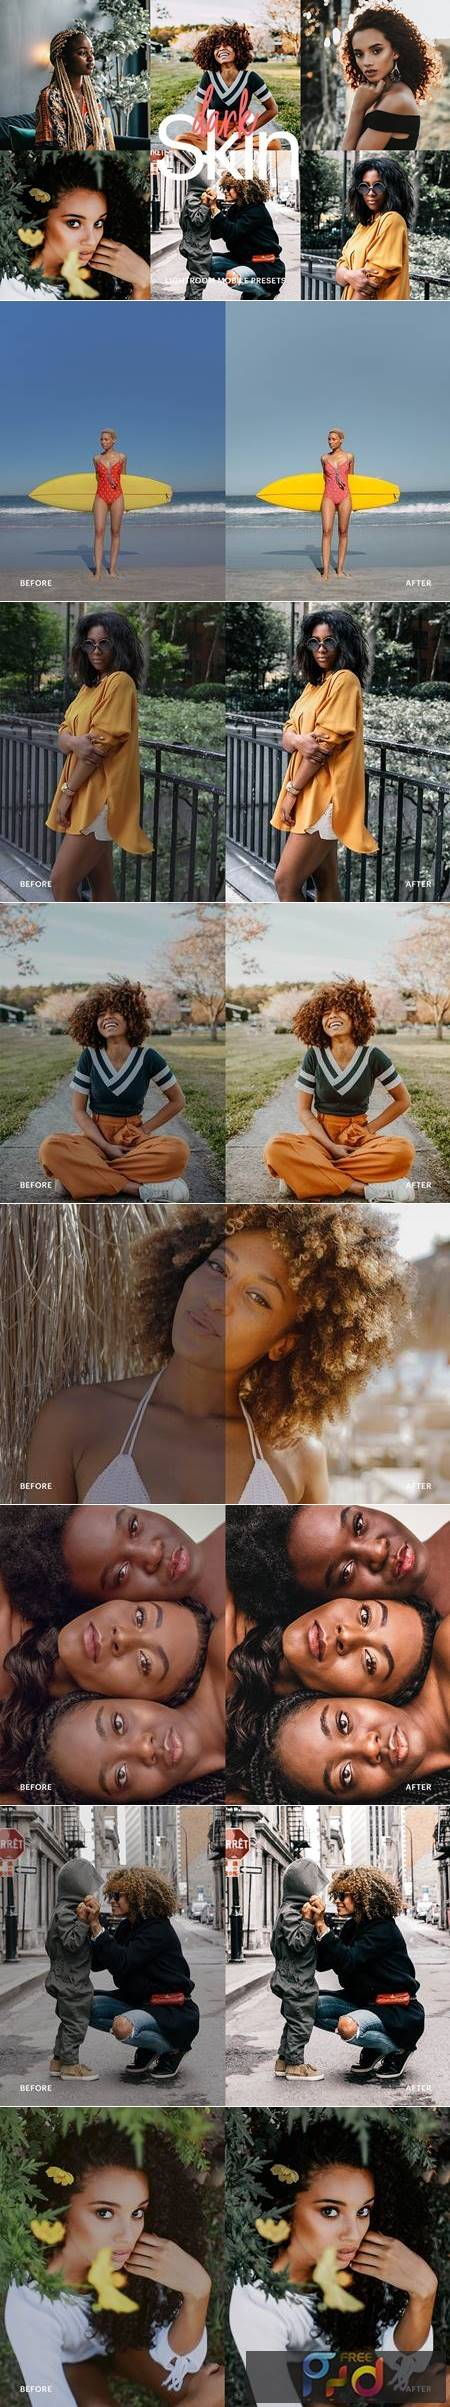 Lightroom Preset - Dark Skin Theme 4972975 1